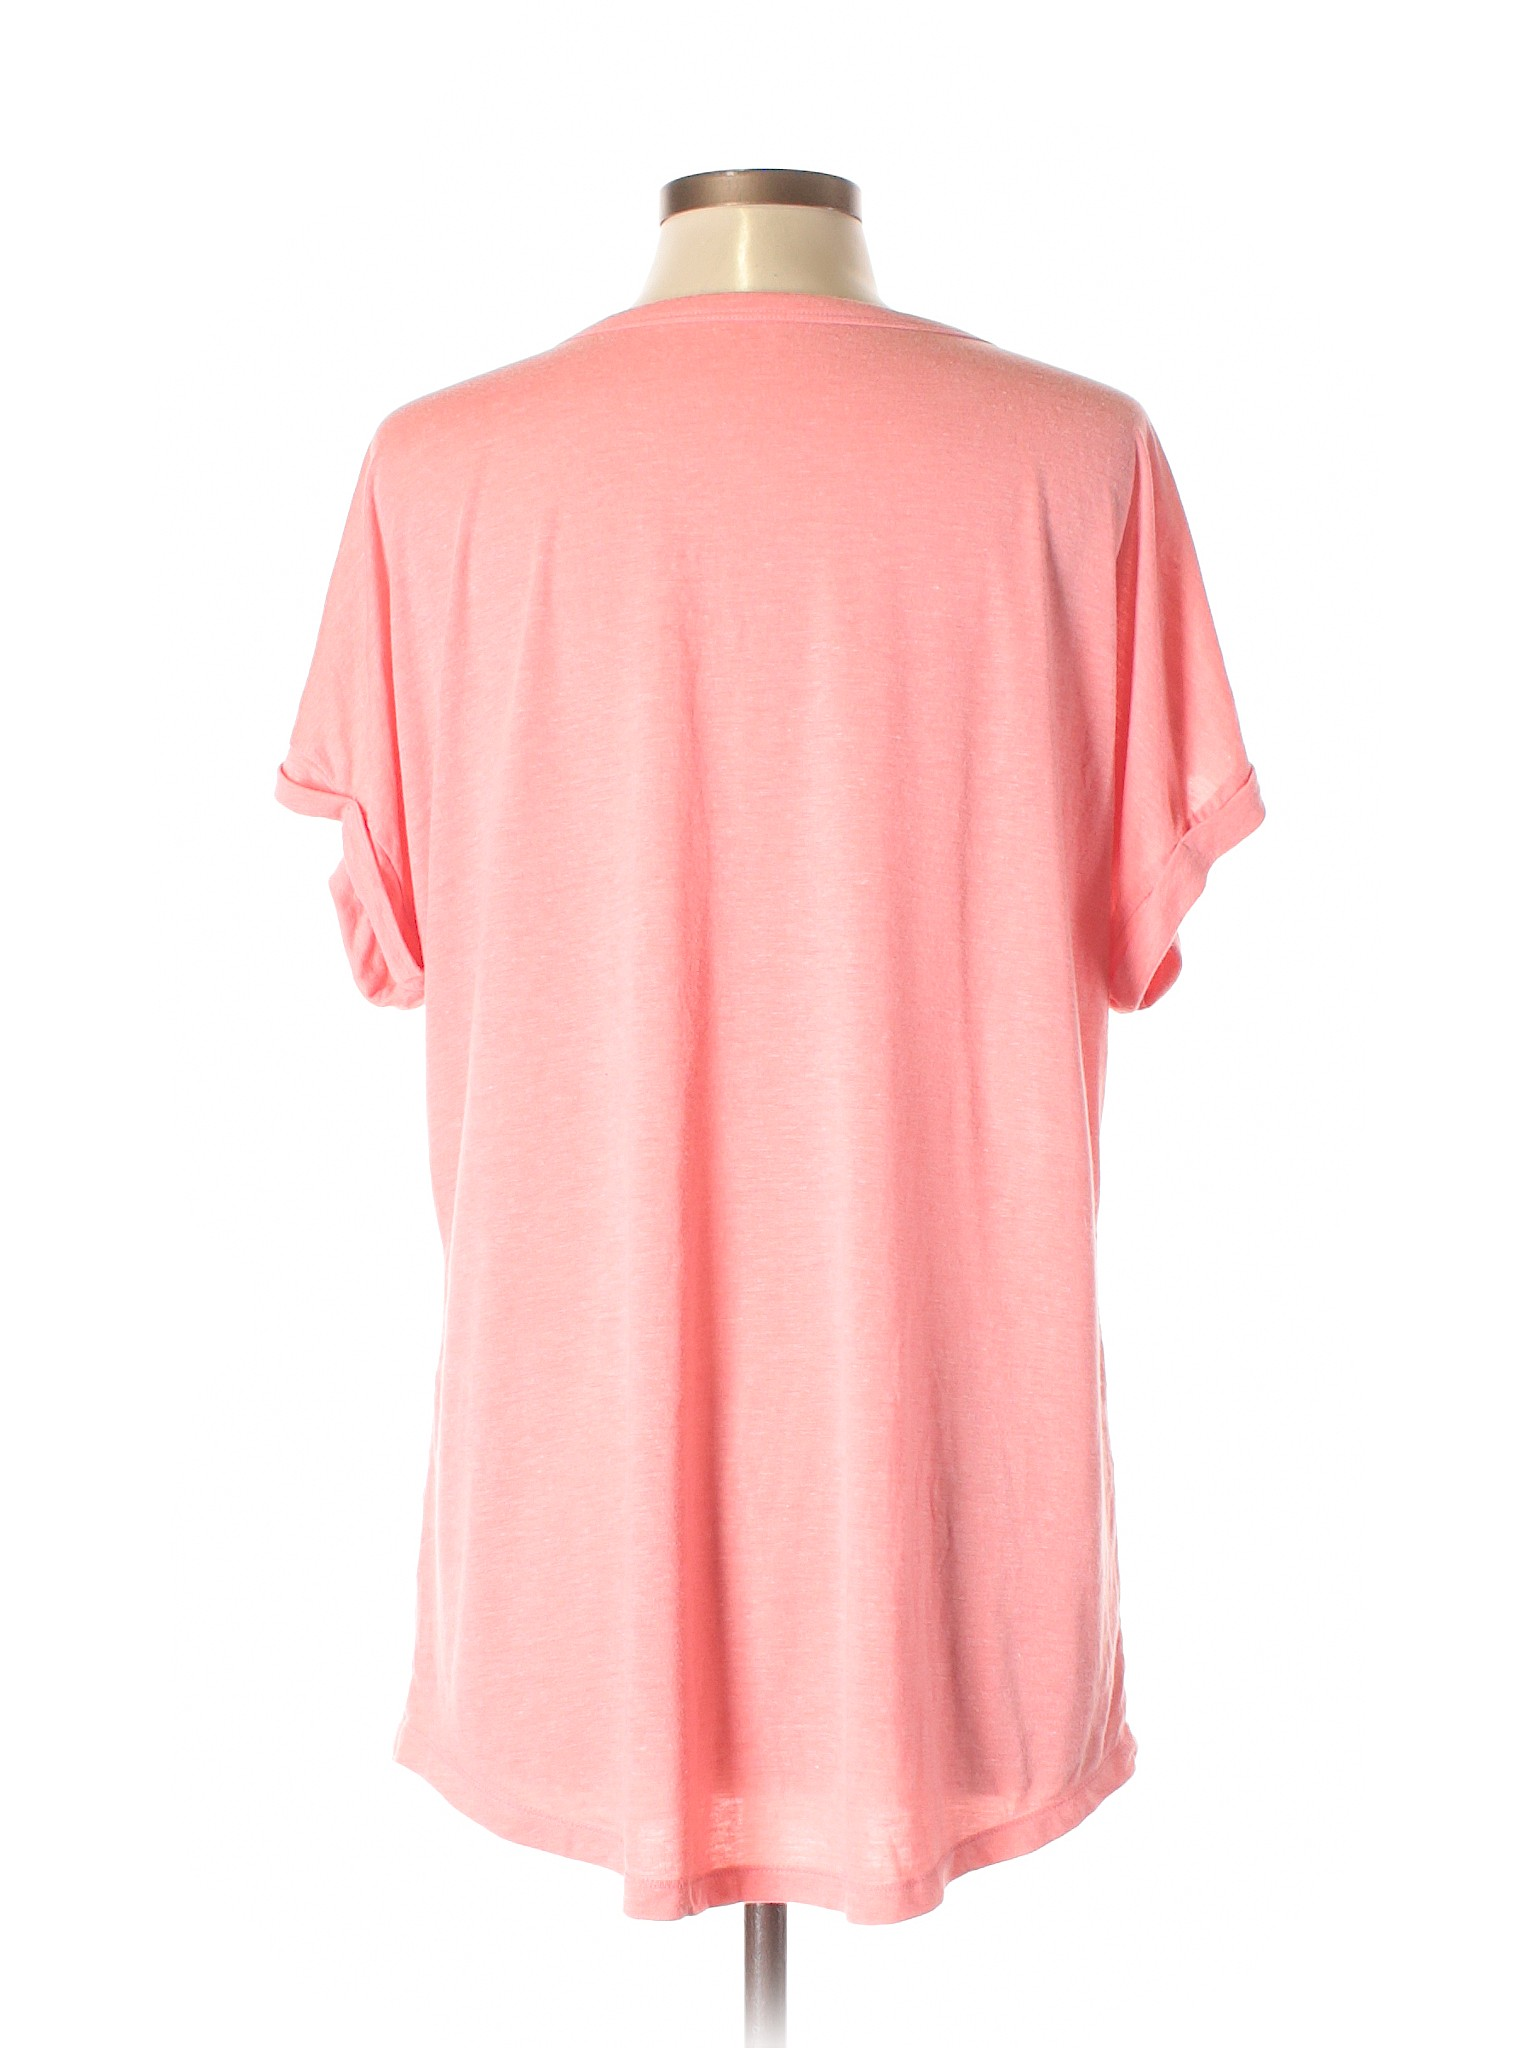 Old Navy Short Sleeve T Shirt Size 1200 Pink Womens